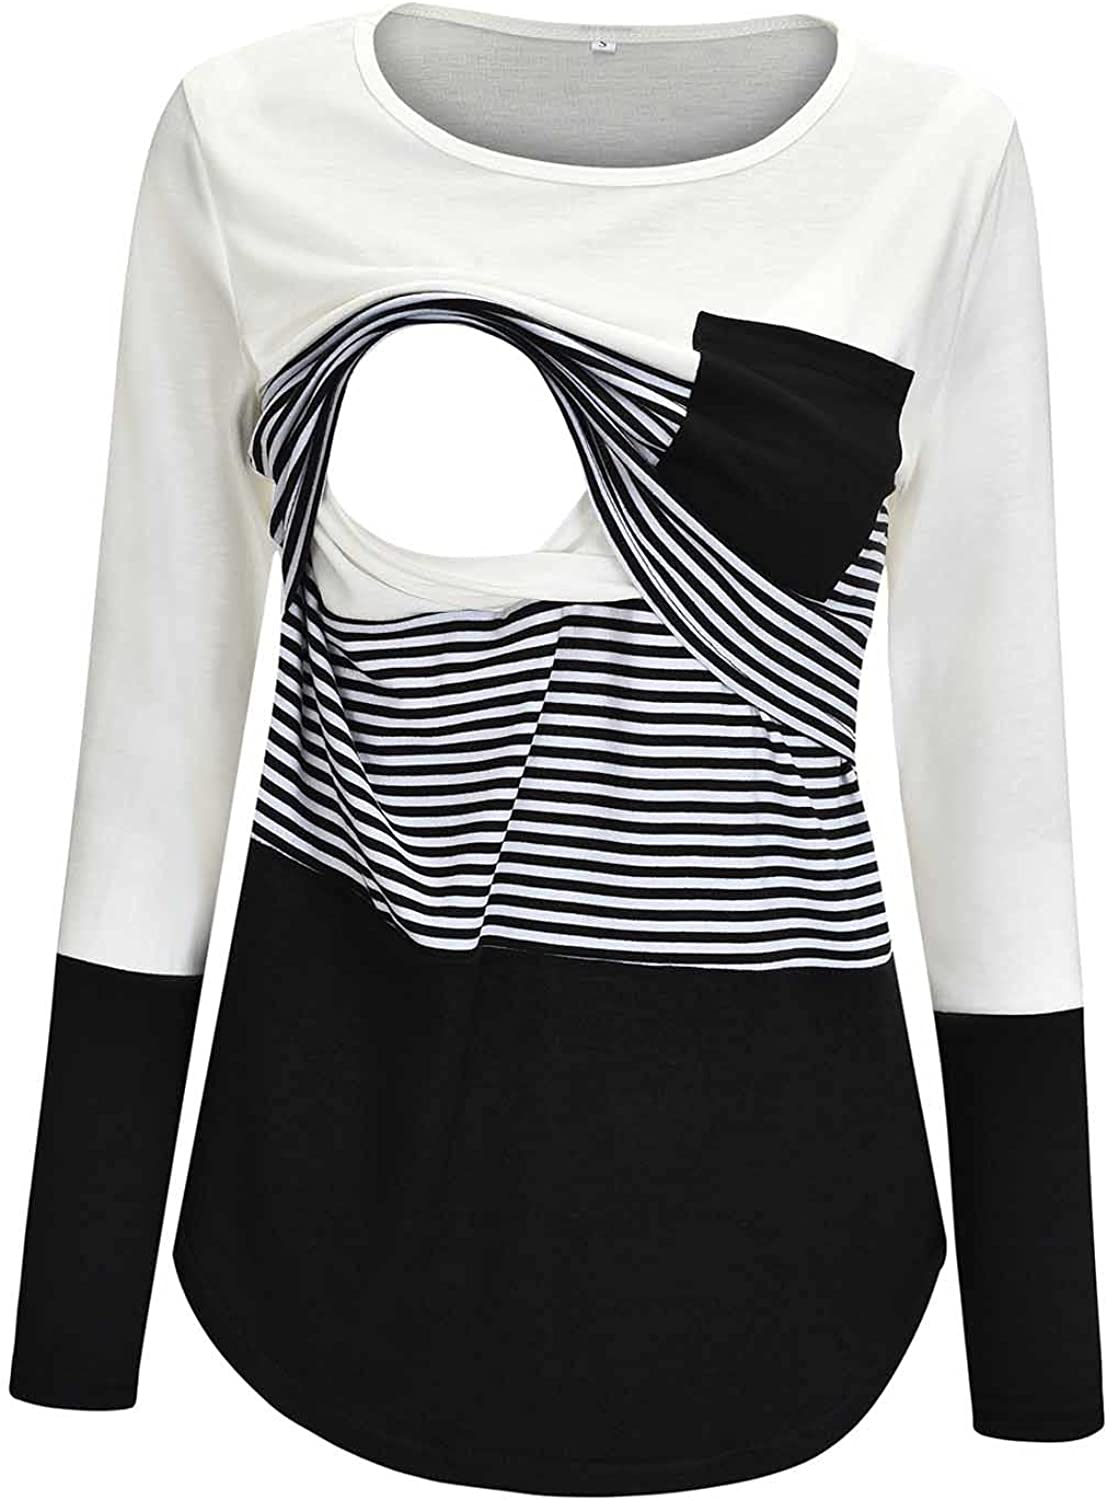 Women's Maternity Tunic Tops Long Sleeve Striped Pregnancy Pullover Pregnant Nursing Tops Pregnant Clothes